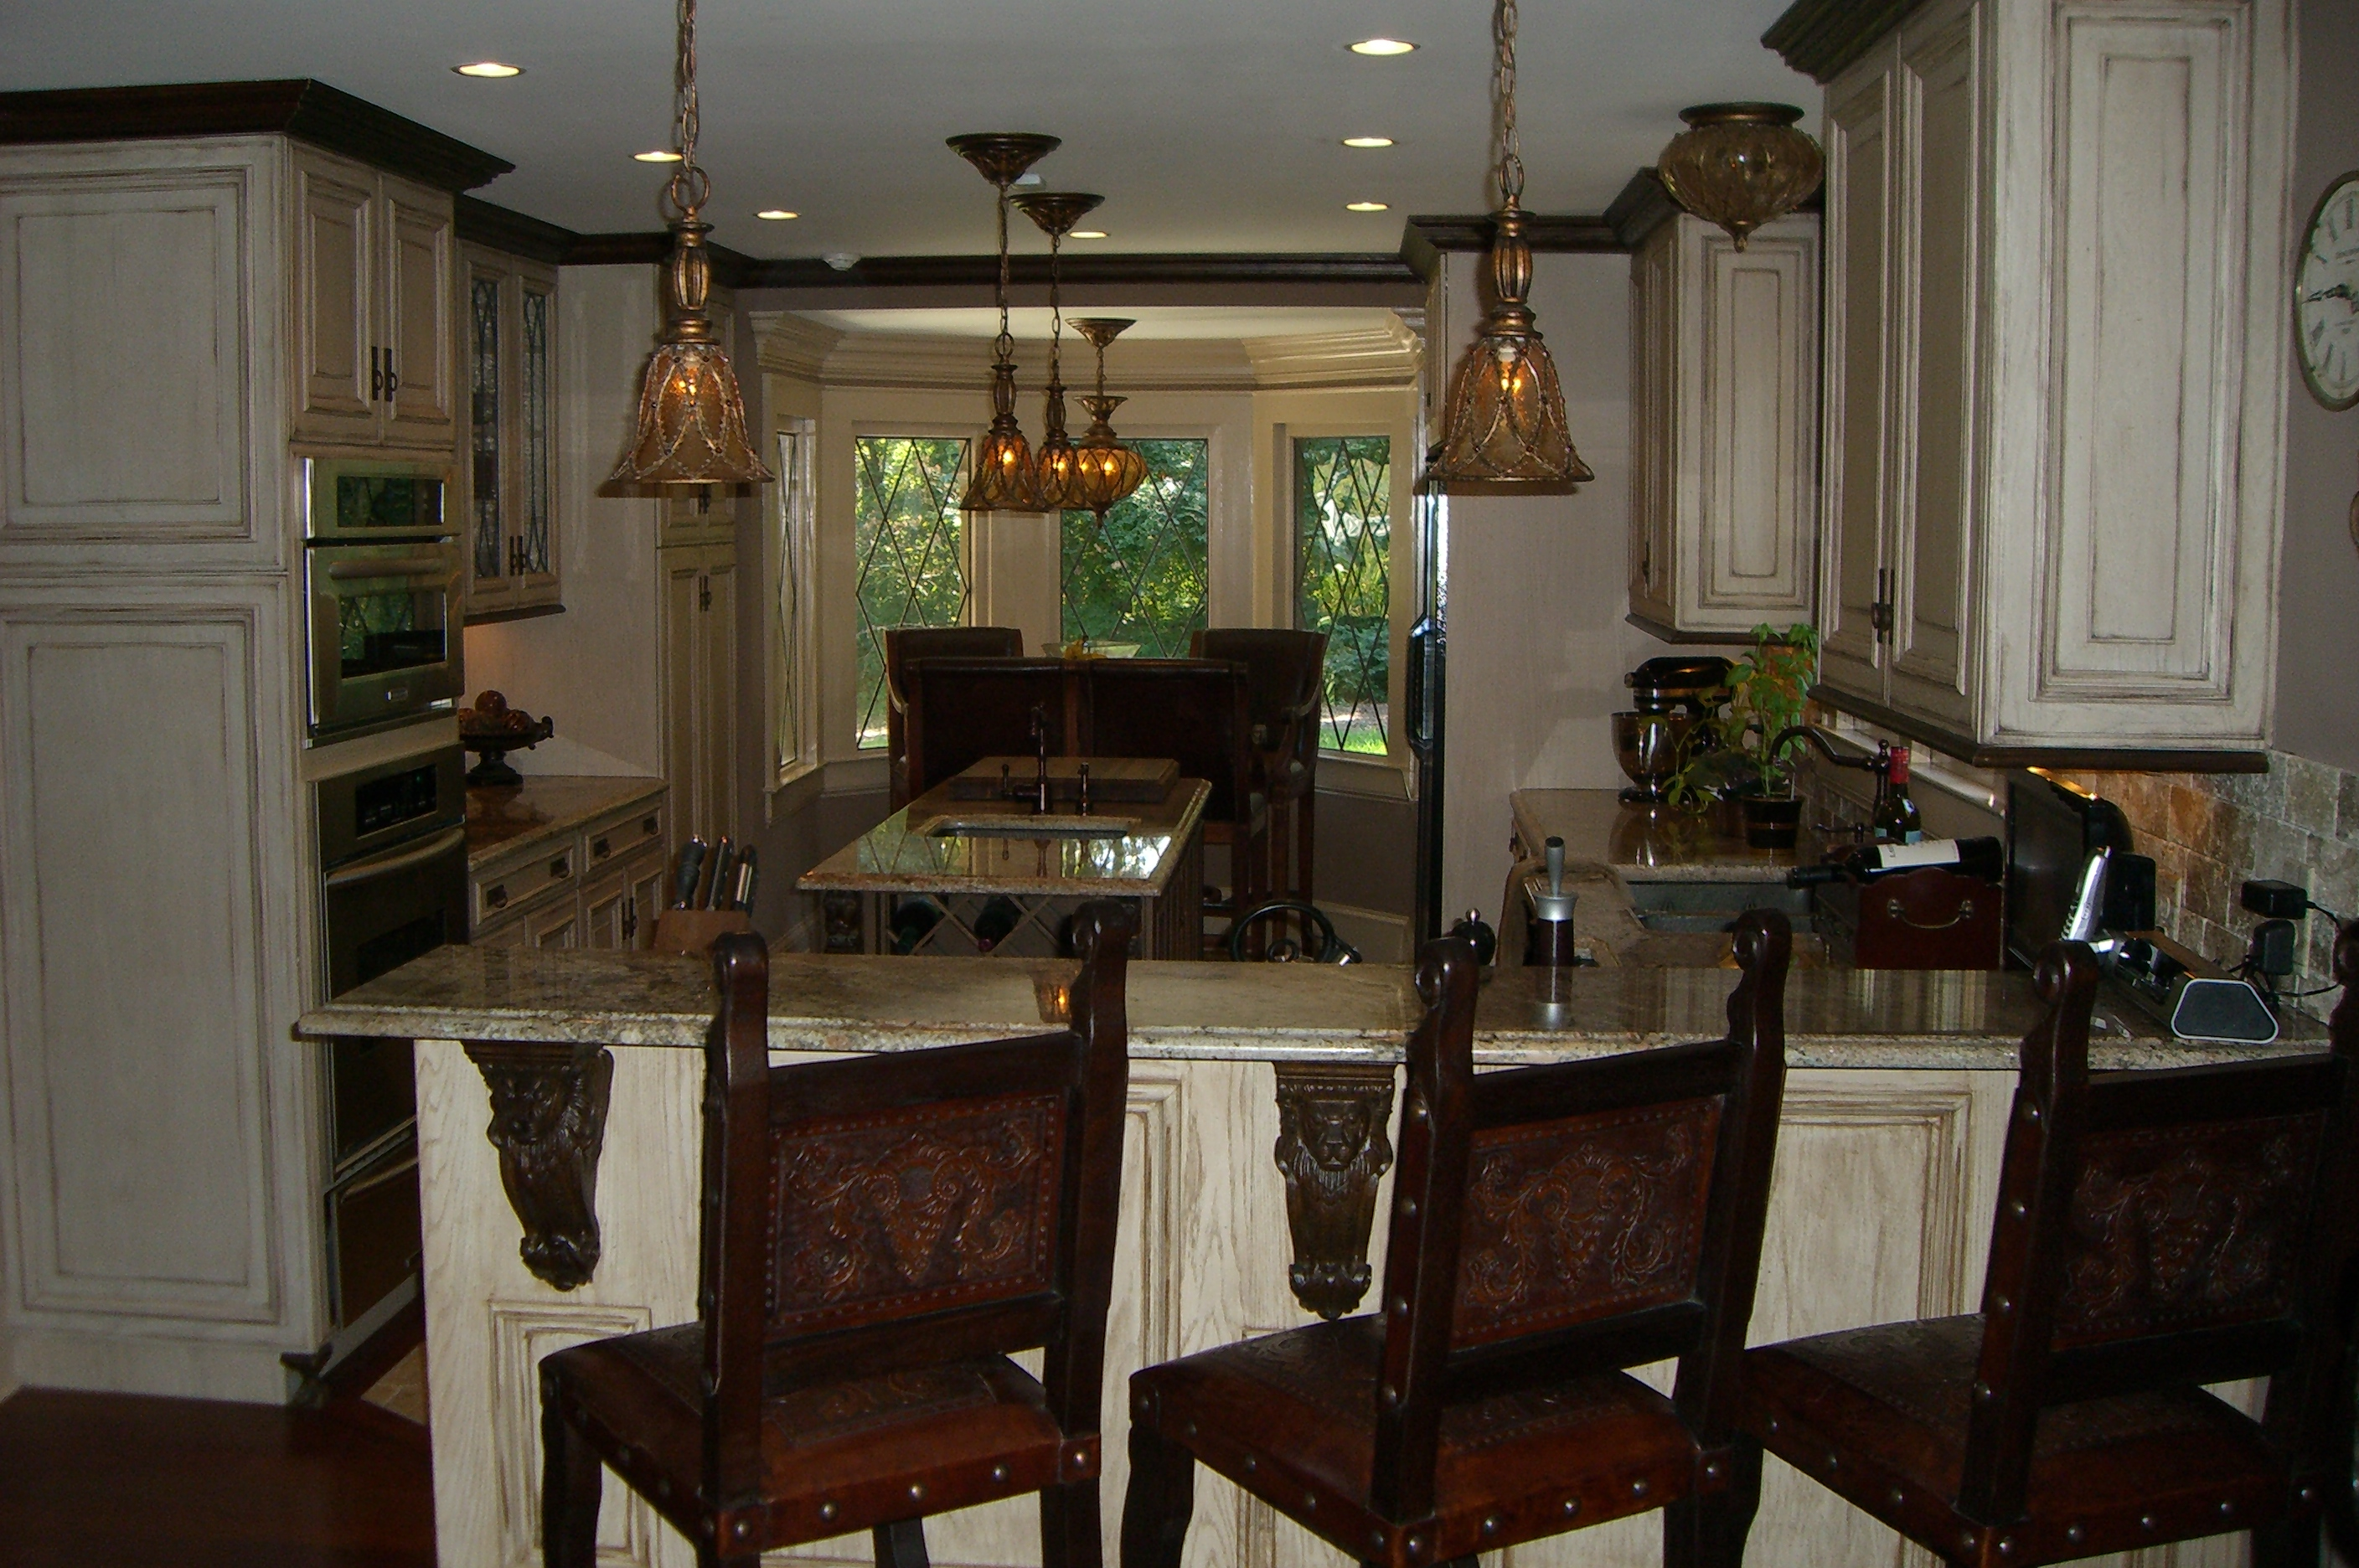 Kitchen Improvements Home Page For Triad Home Improvements Home Improvements For